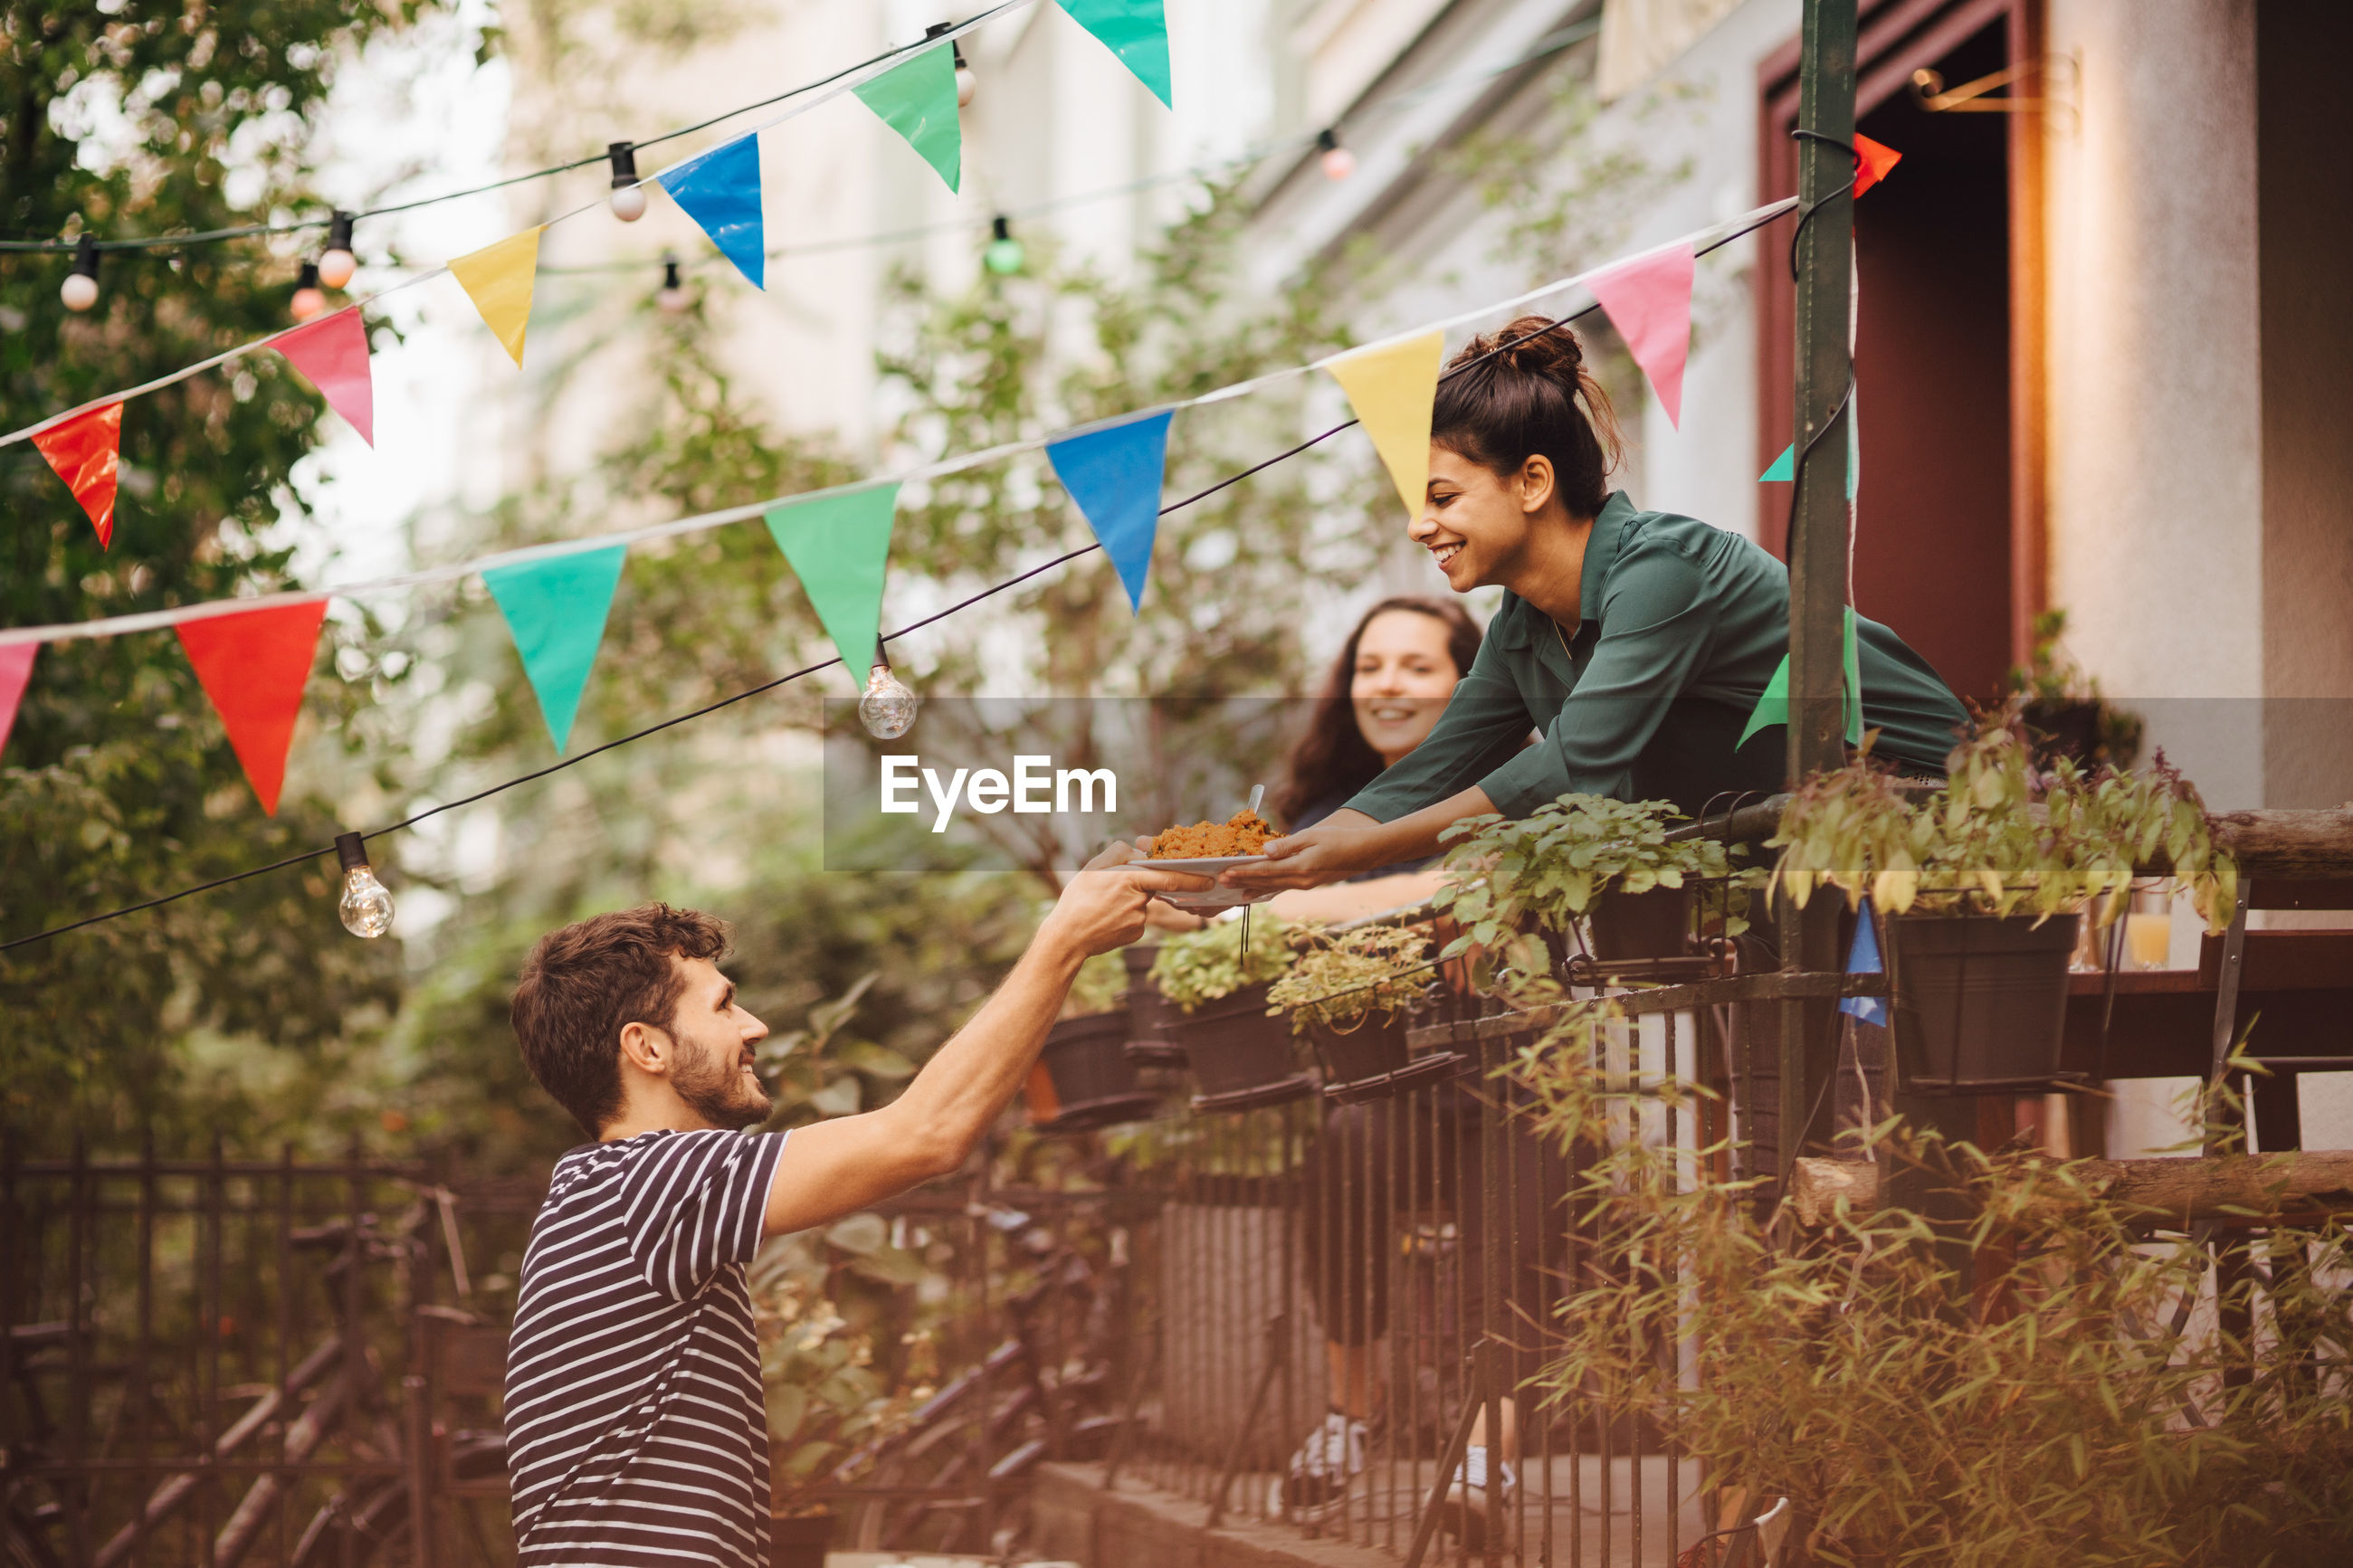 Smiling young woman giving food to male friend from balcony during garden party